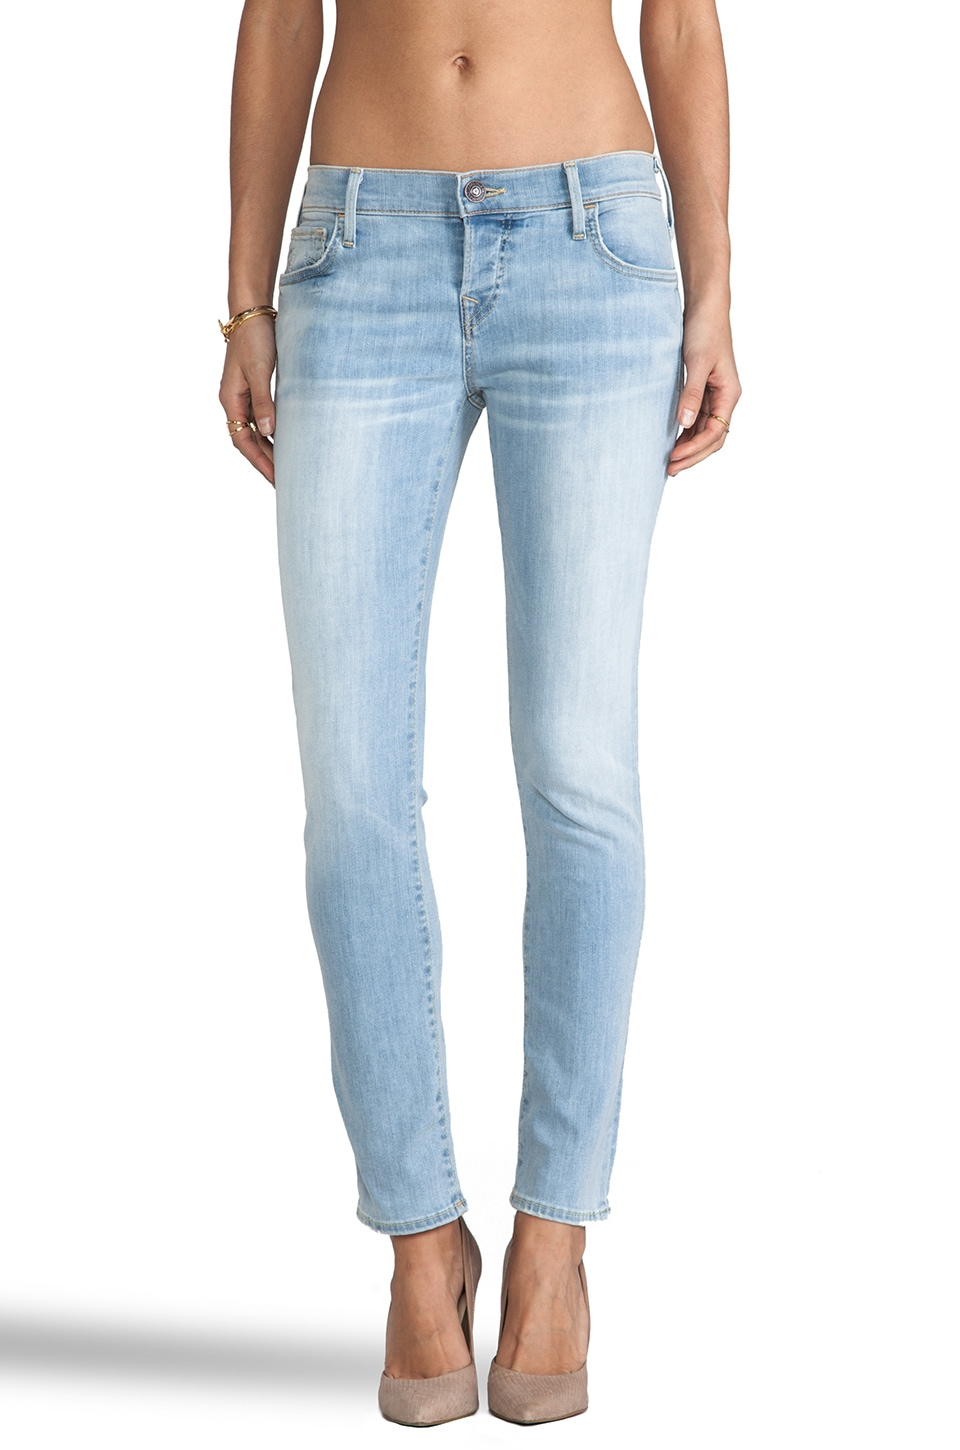 True Religion Leona Low Rise Capri in Breezy Meadow